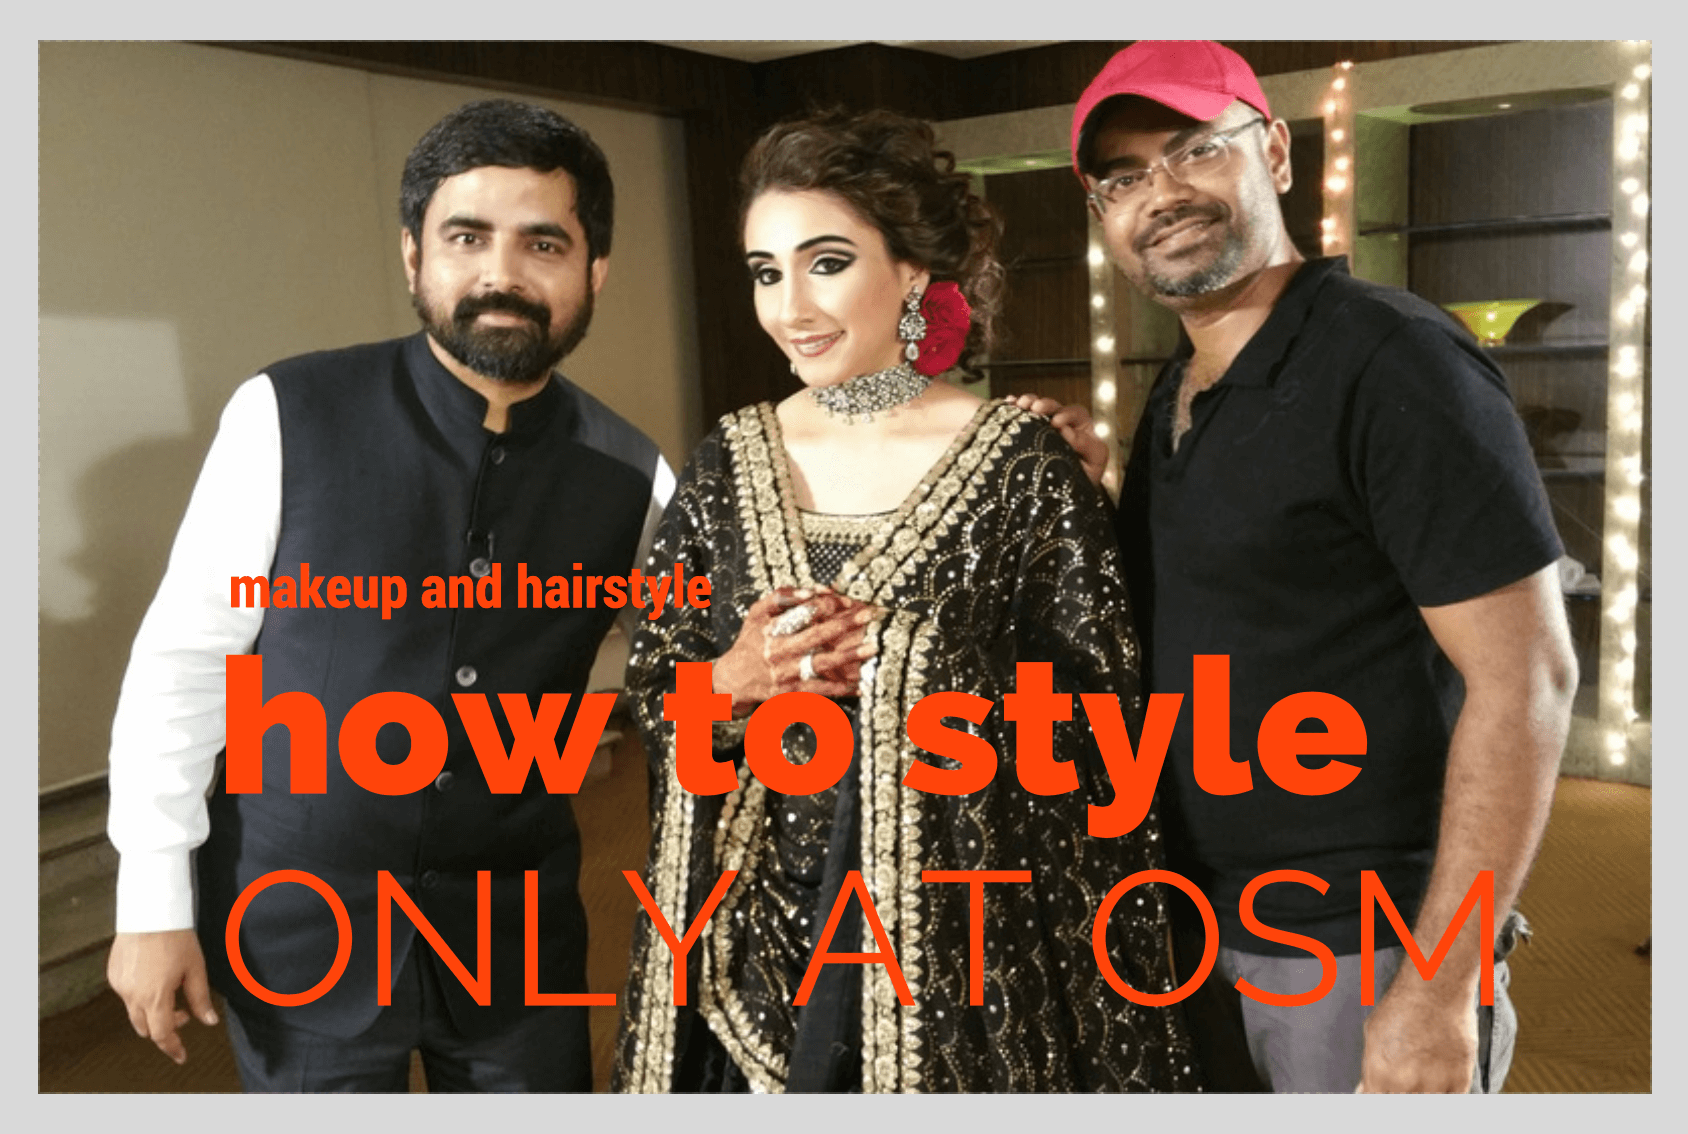 Get Makeup Artist Training In Mumbai From Experts at OSM